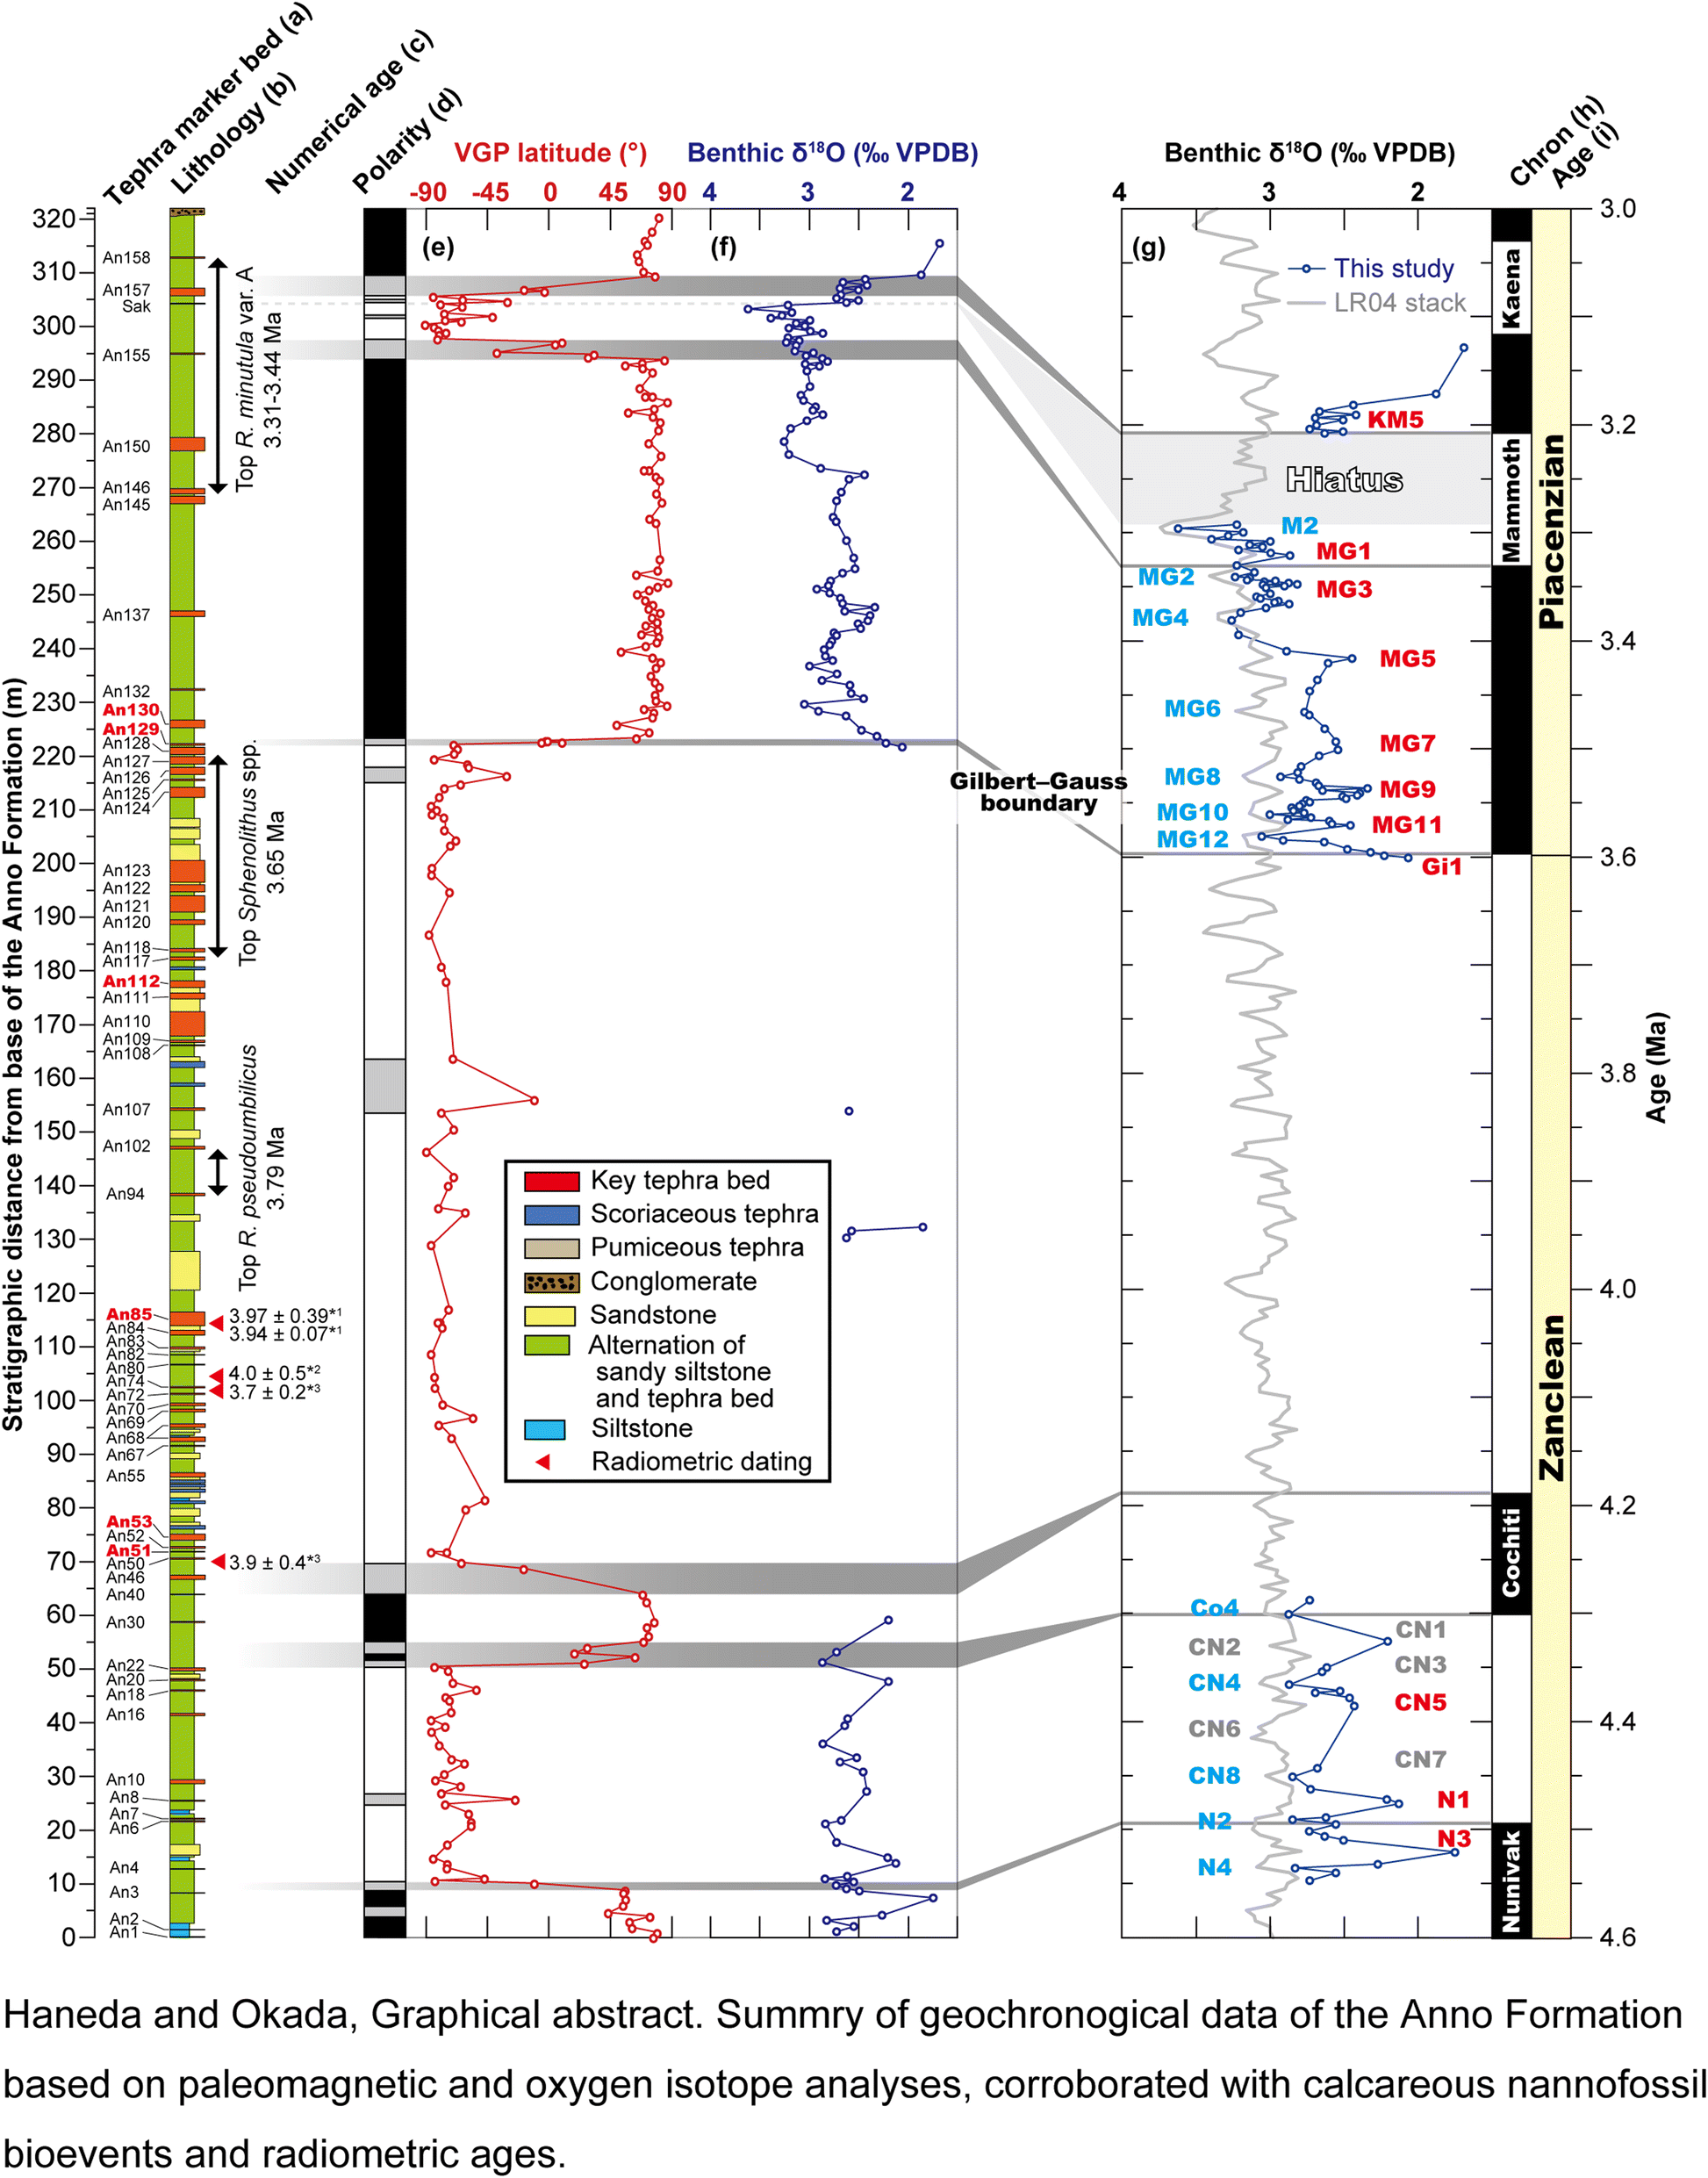 Pliocene integrated chronostratigraphy from the Anno Formation, Awa